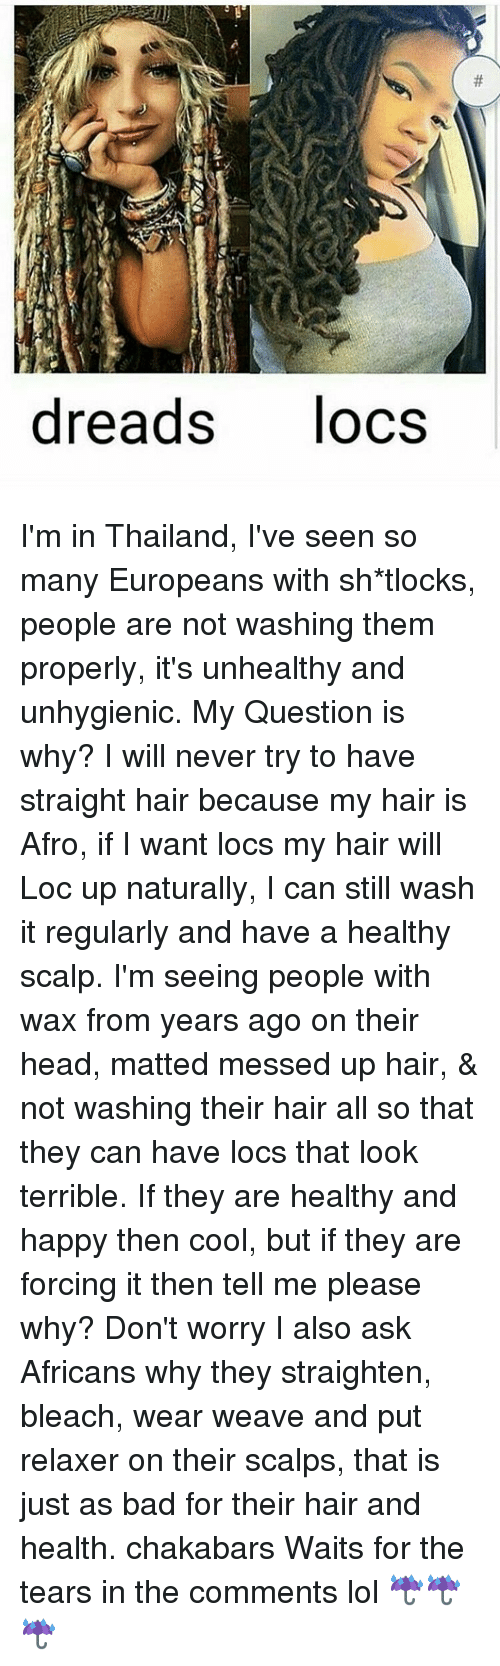 Dreads, Memes, and Weave: dreads  locs I'm in Thailand, I've seen so many Europeans with sh*tlocks, people are not washing them properly, it's unhealthy and unhygienic. My Question is why? I will never try to have straight hair because my hair is Afro, if I want locs my hair will Loc up naturally, I can still wash it regularly and have a healthy scalp. I'm seeing people with wax from years ago on their head, matted messed up hair, & not washing their hair all so that they can have locs that look terrible. If they are healthy and happy then cool, but if they are forcing it then tell me please why? Don't worry I also ask Africans why they straighten, bleach, wear weave and put relaxer on their scalps, that is just as bad for their hair and health. chakabars Waits for the tears in the comments lol ☔️☔️☔️